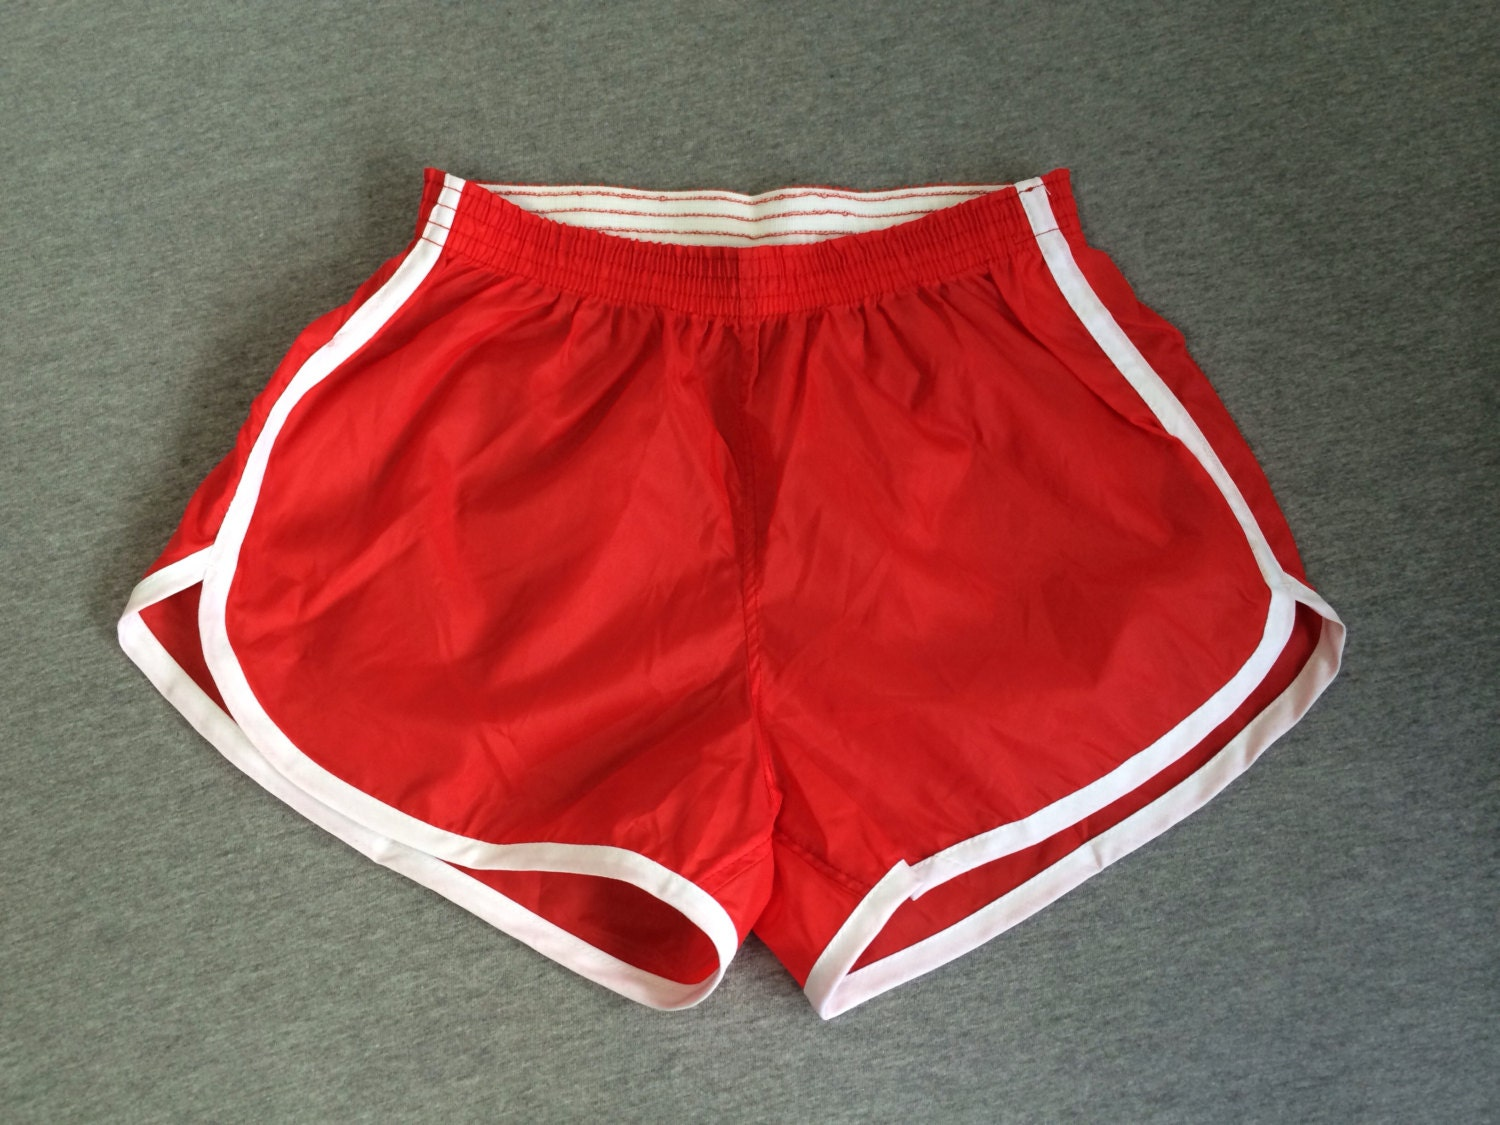 80'S NYLON SHORTS VINTAGE ORIGINALS/ UNWORN DEADSTOCK HIGH-WAISTED ...